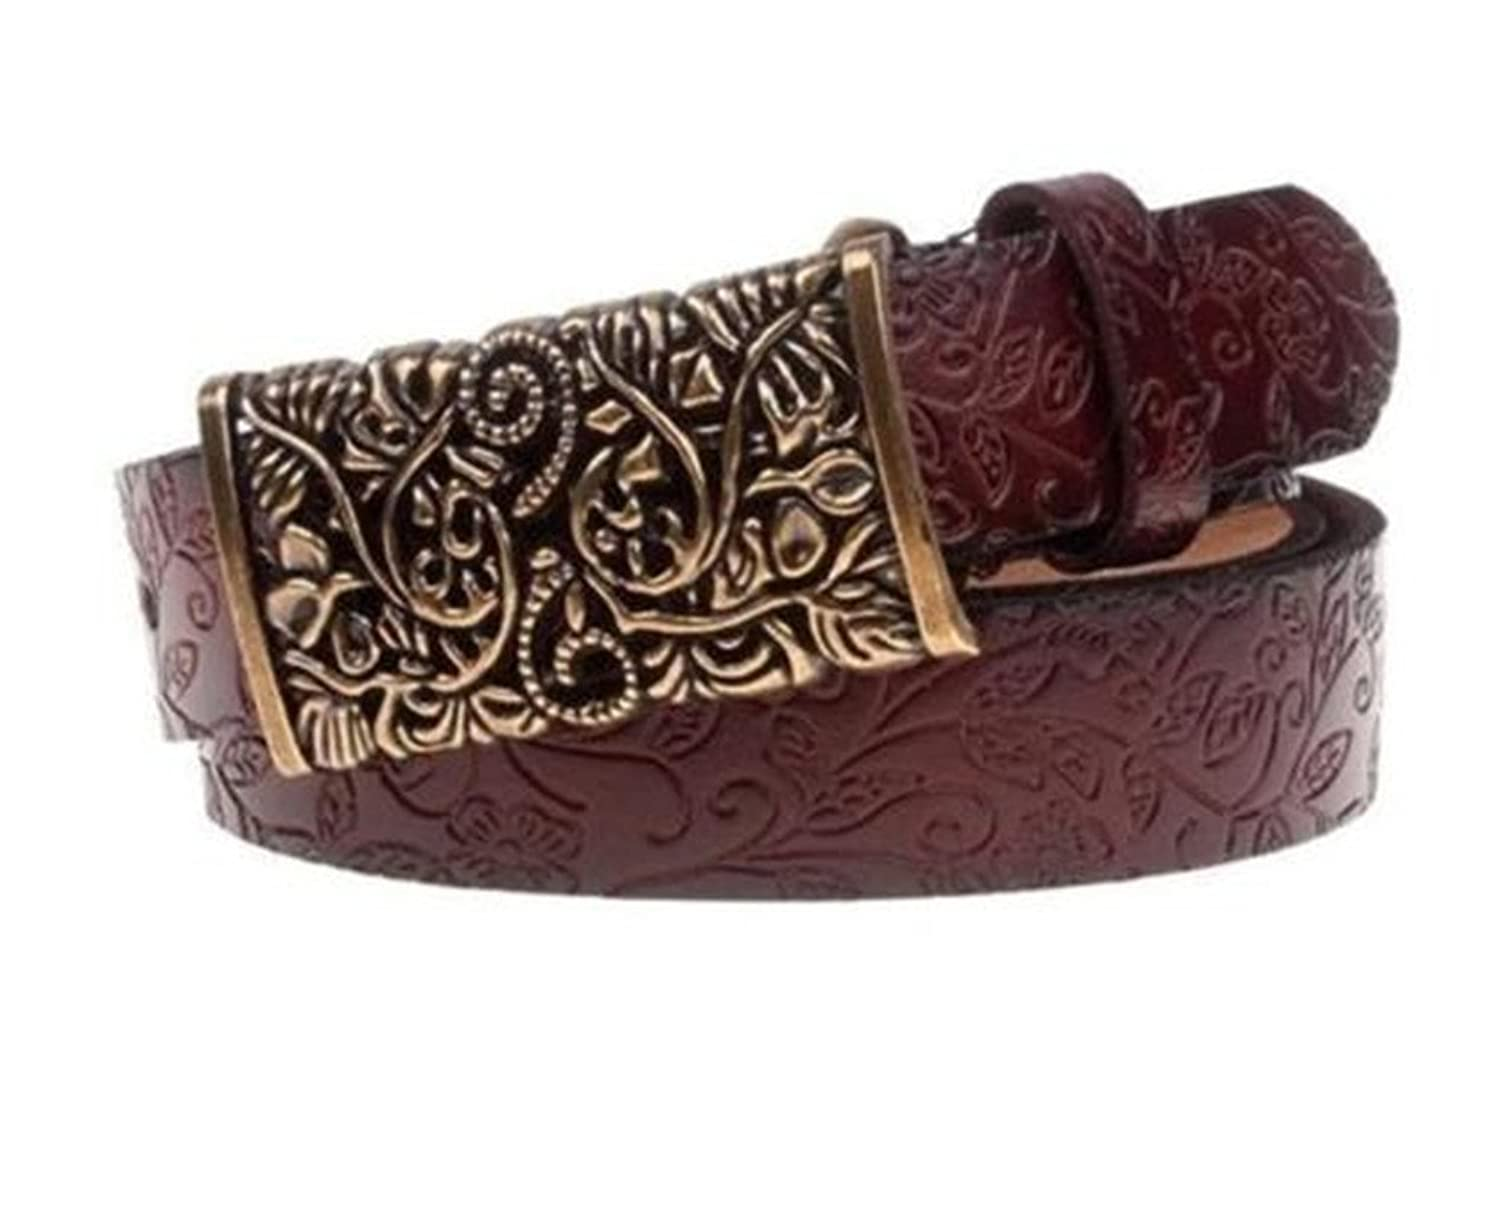 GUAngqi Leather Belts Floral Pattern Nostalgic Classic Waistband Belts